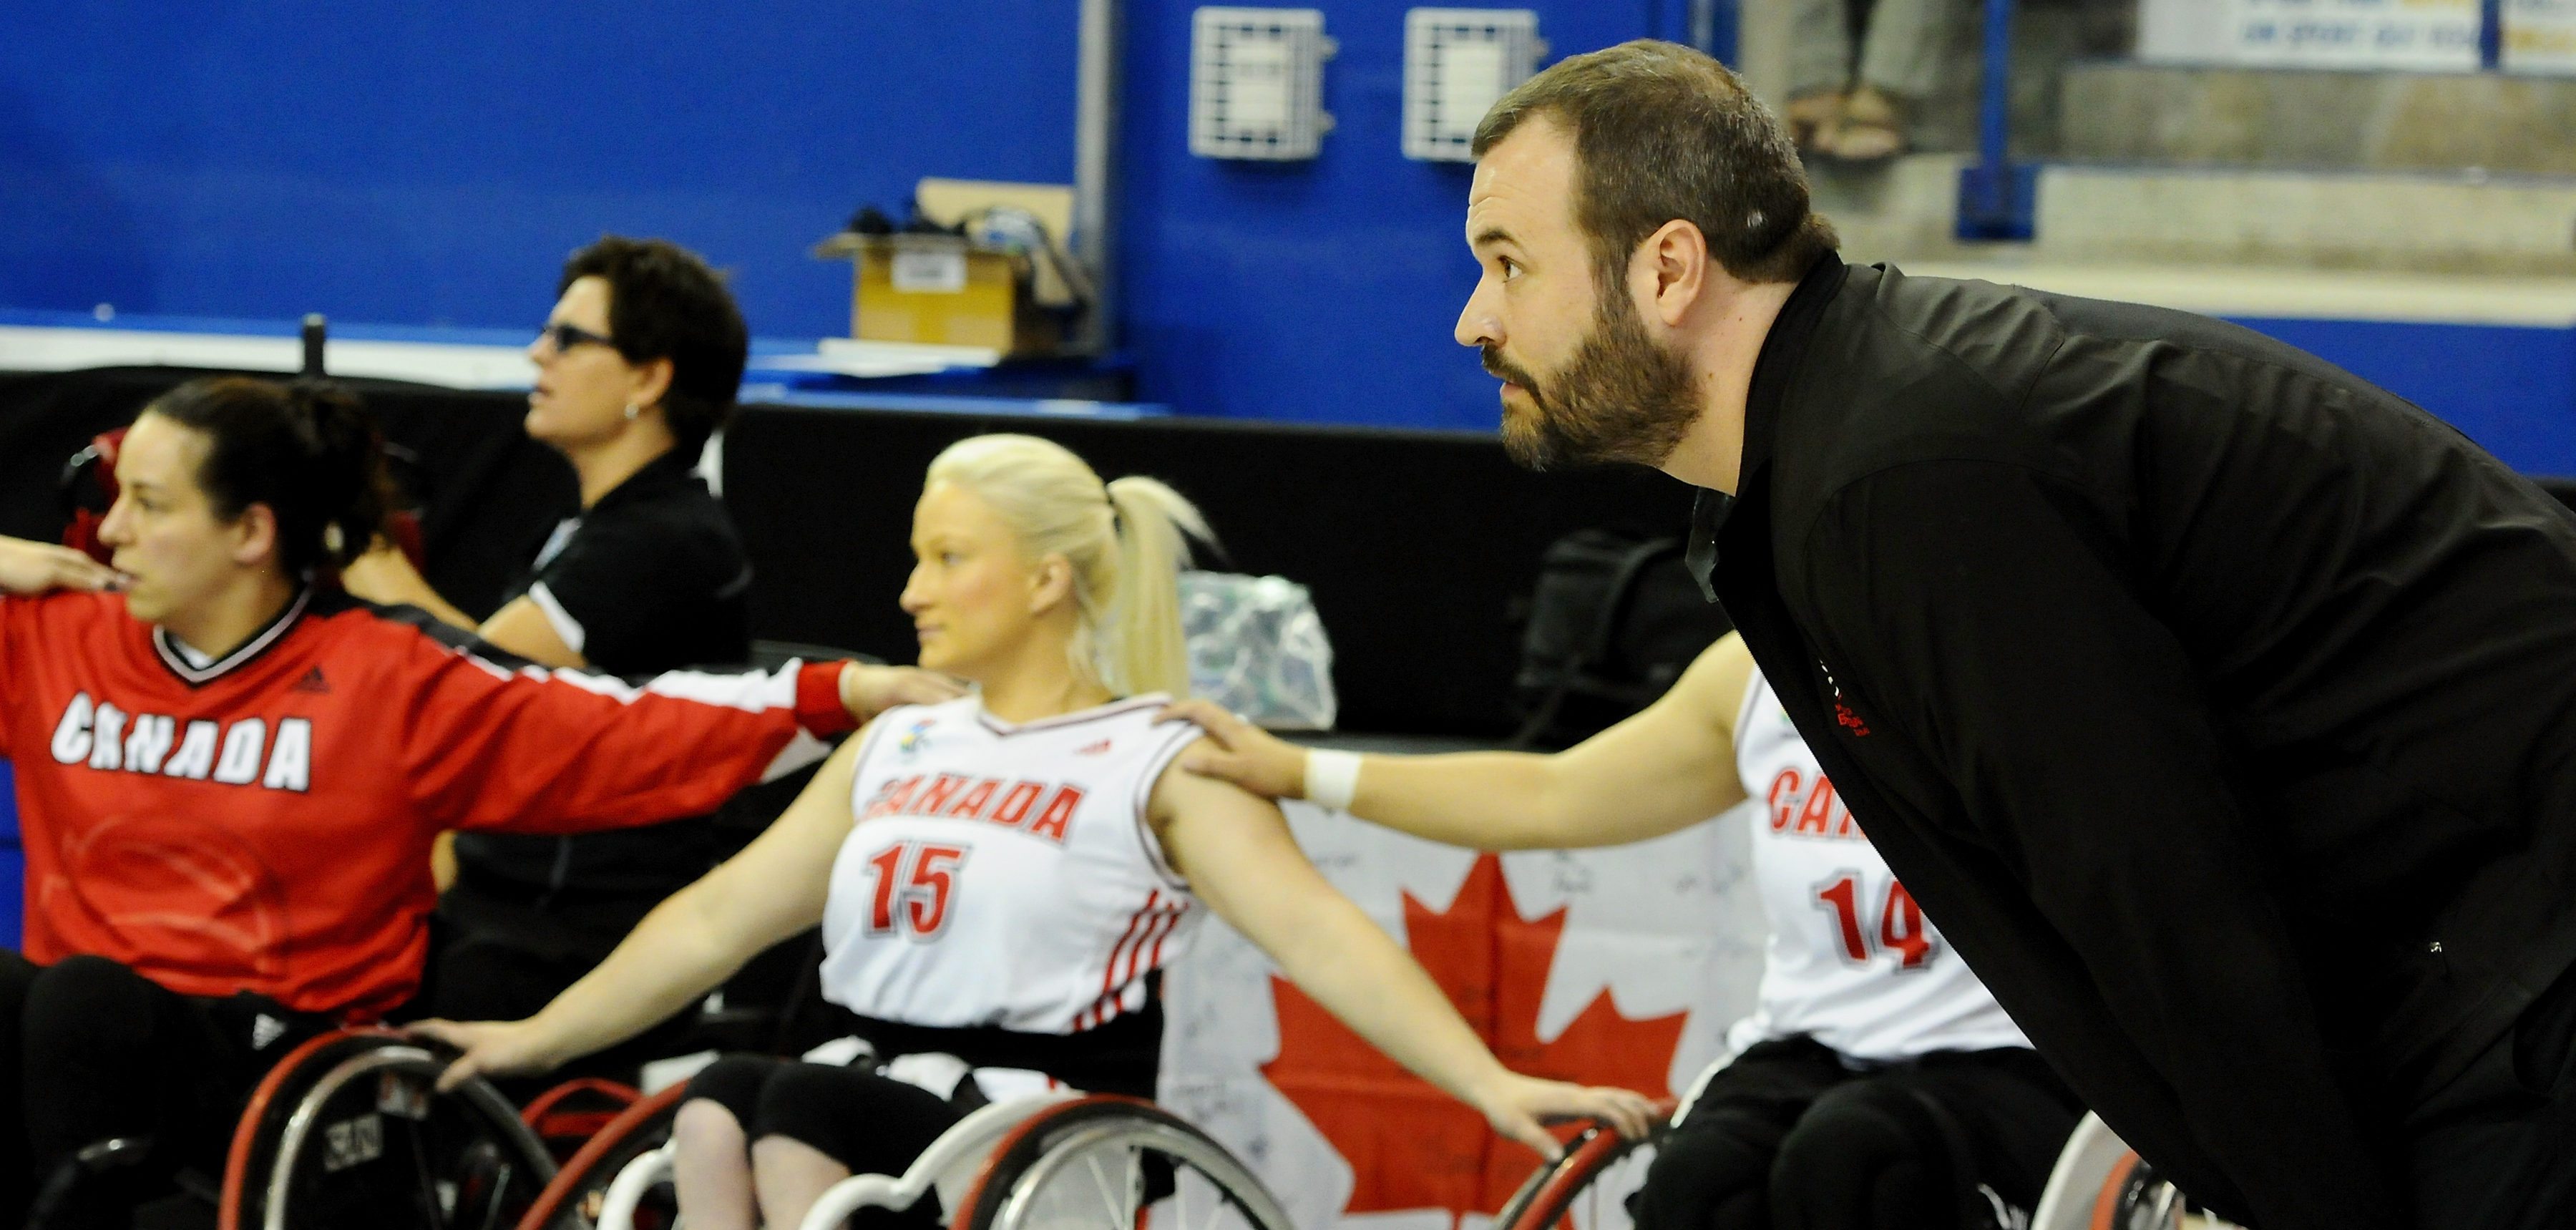 Head Coach Bill Johnson of Team Canada looks on anxiously in the dying seconds of a close game against Team Germany in the Gold Medal Game at the 2014 Women's World Wheelchair Basketball Championships in Toronto, Ontario, Canada.